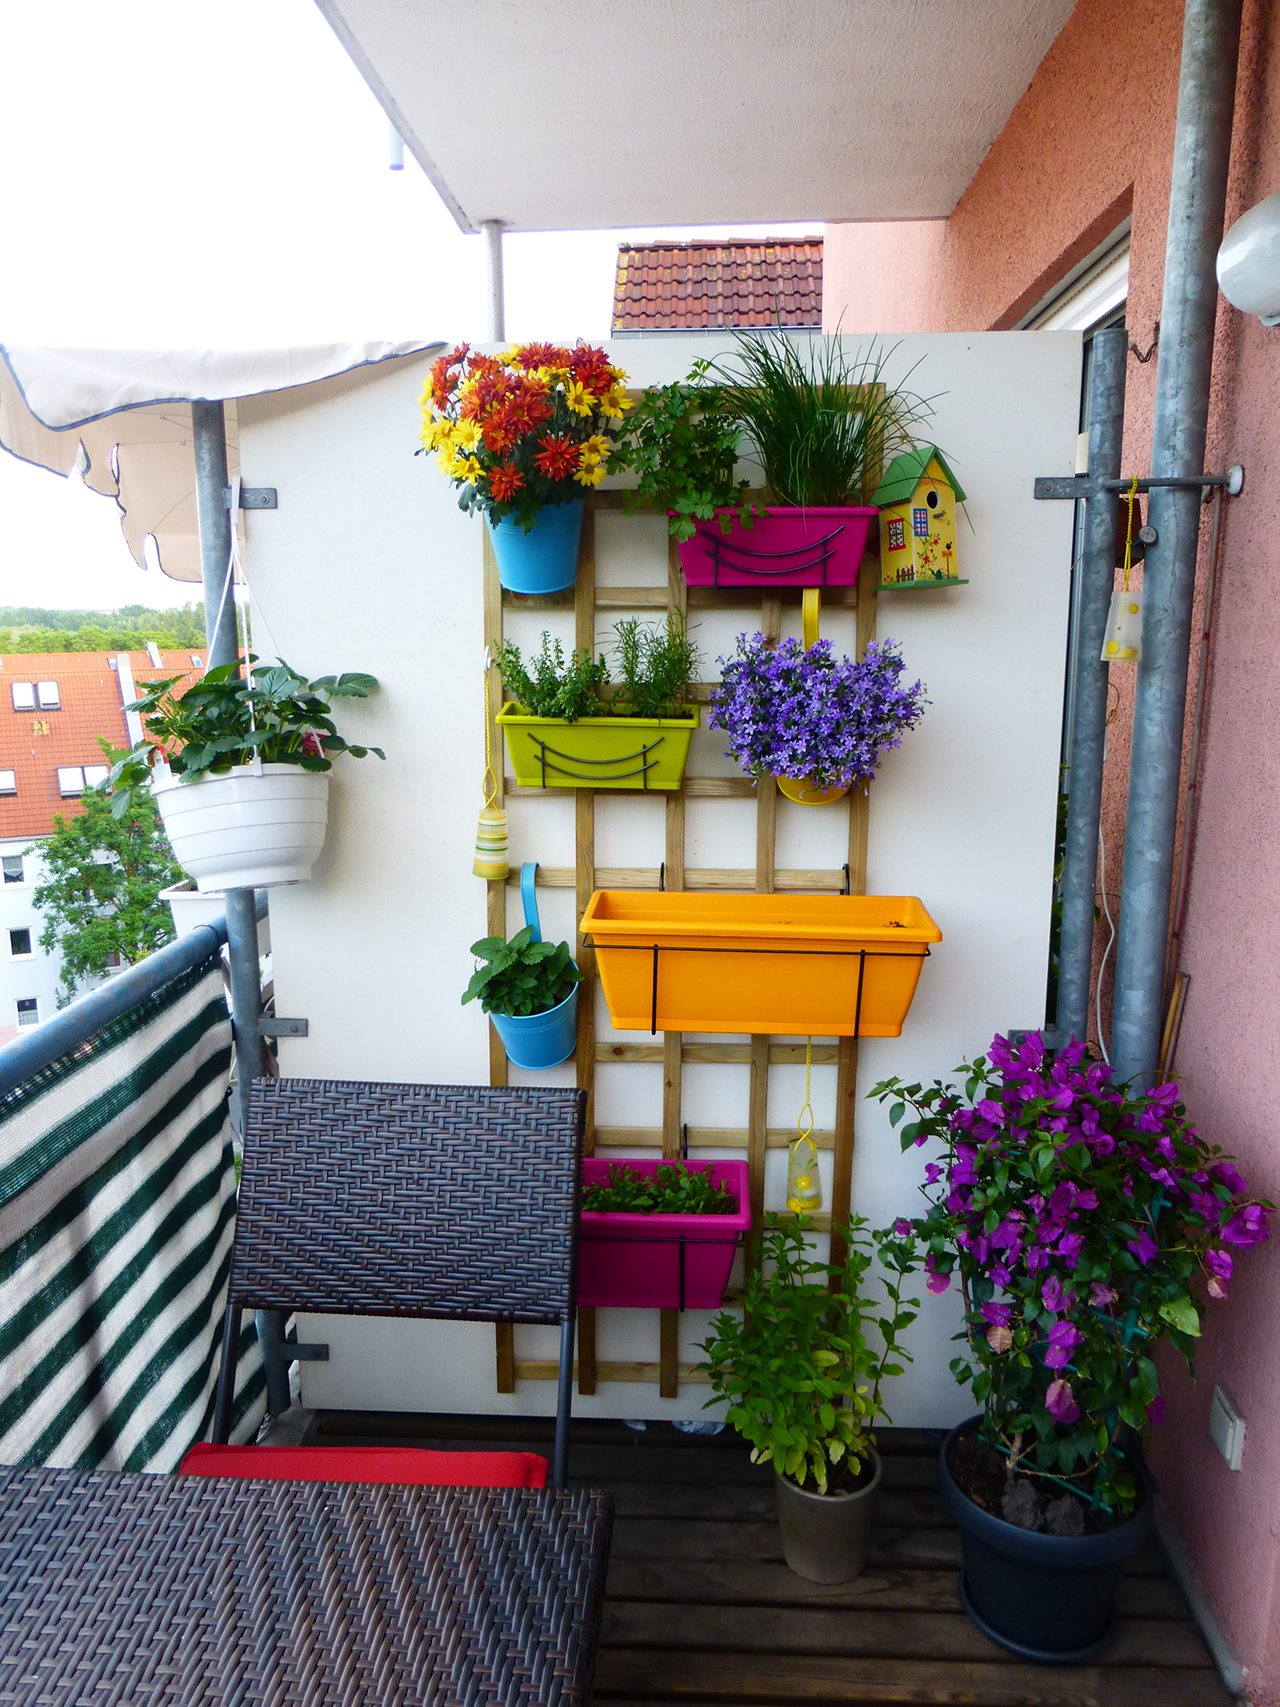 Vertical balcony garden ideas avivancos.com.